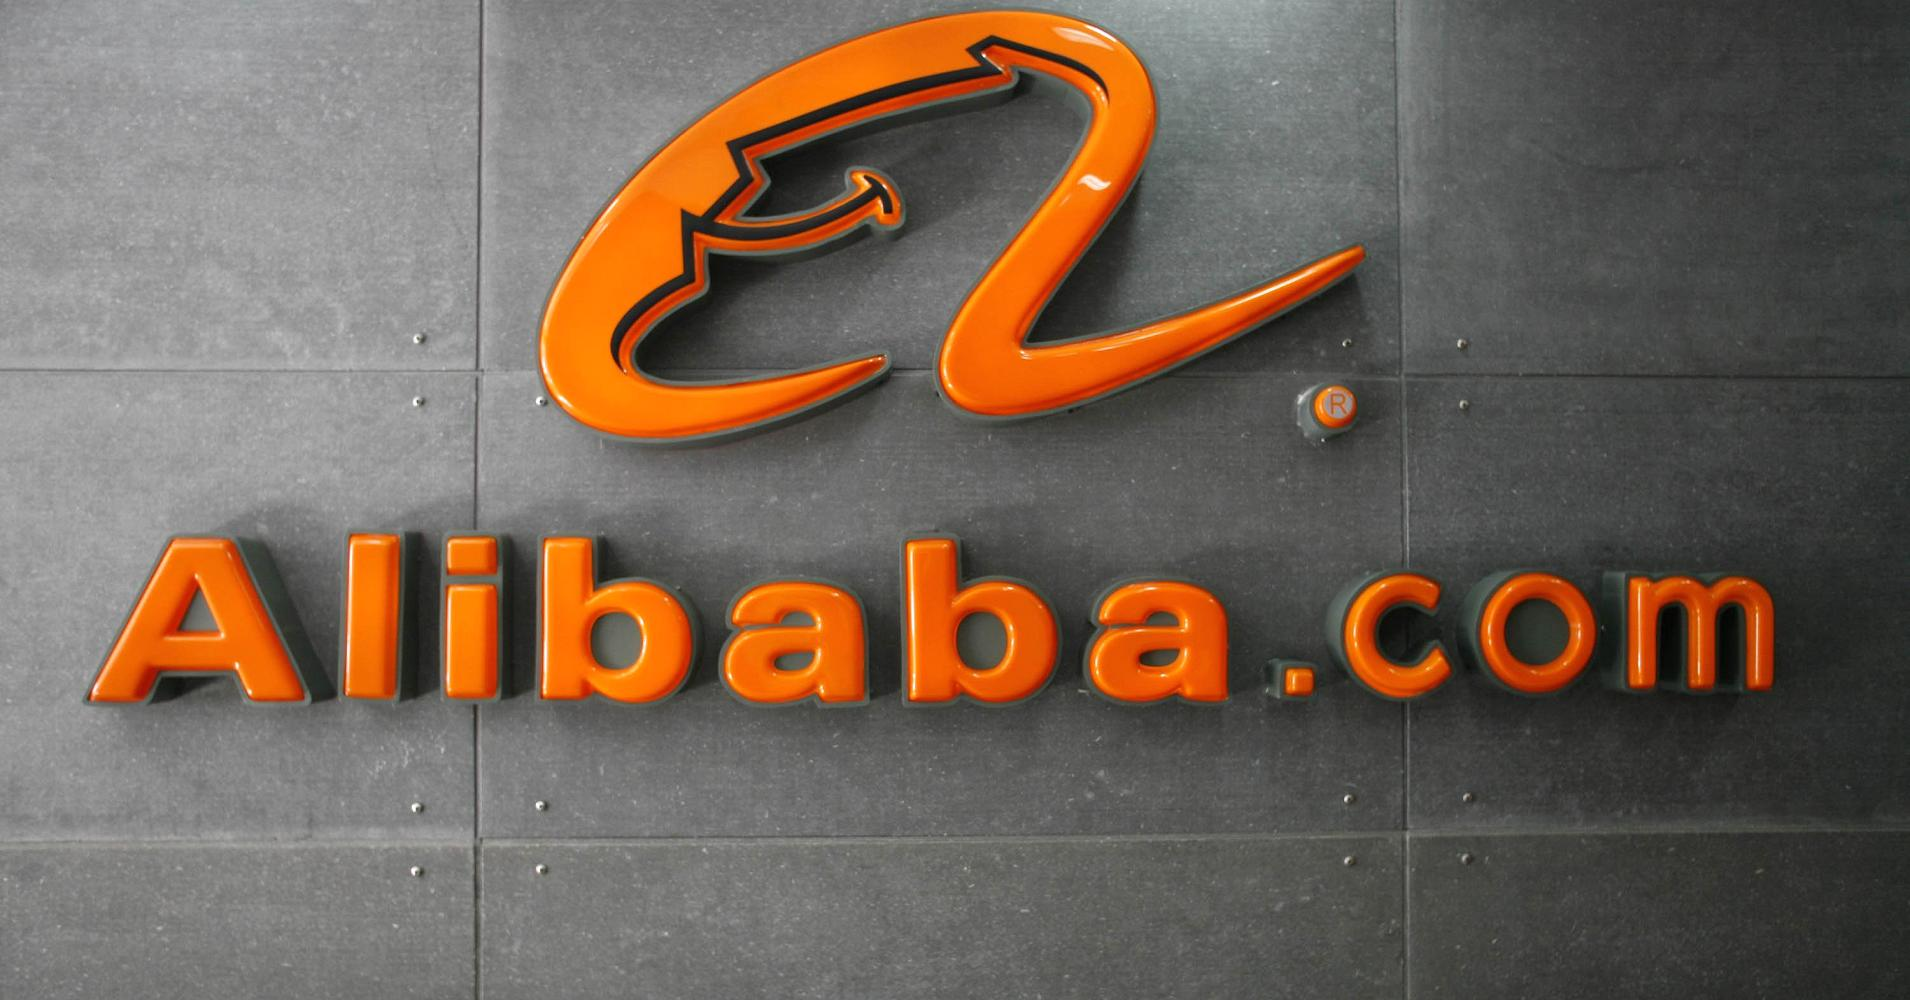 Could Alibaba Be In Danger Of Losing Its Stronghold?